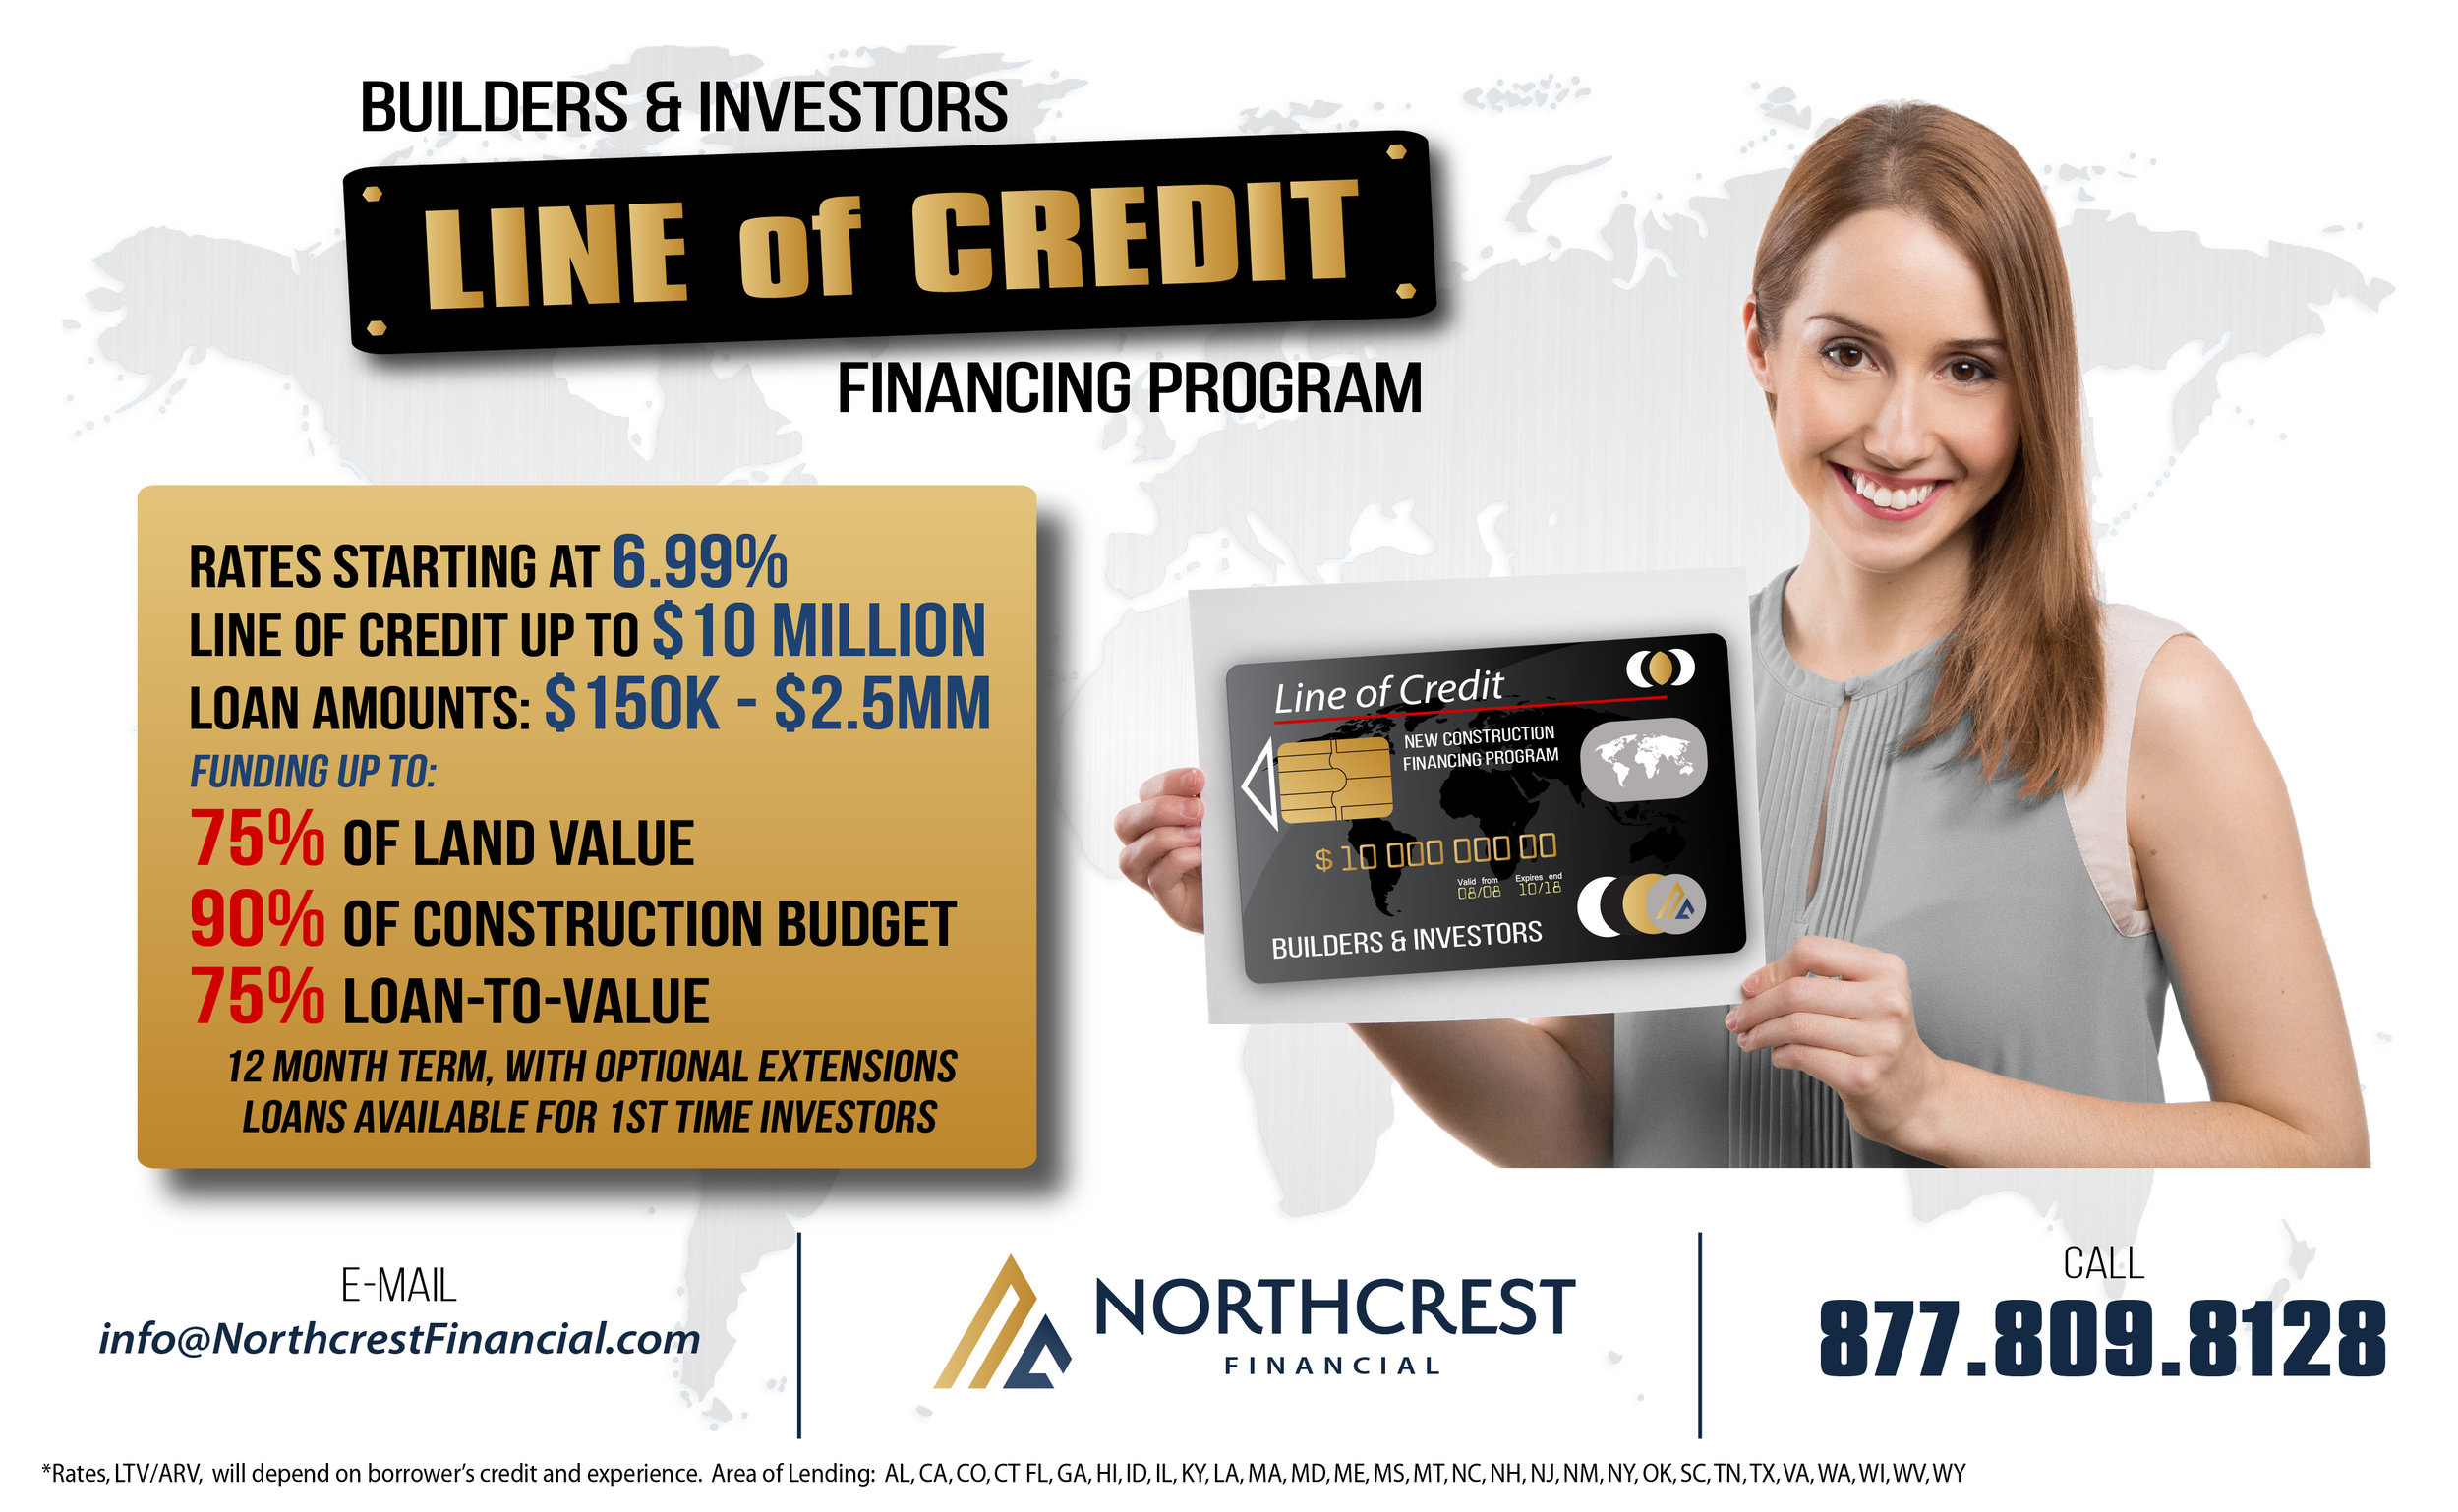 Line of Credit Financing for Real Estate Builders and Investors